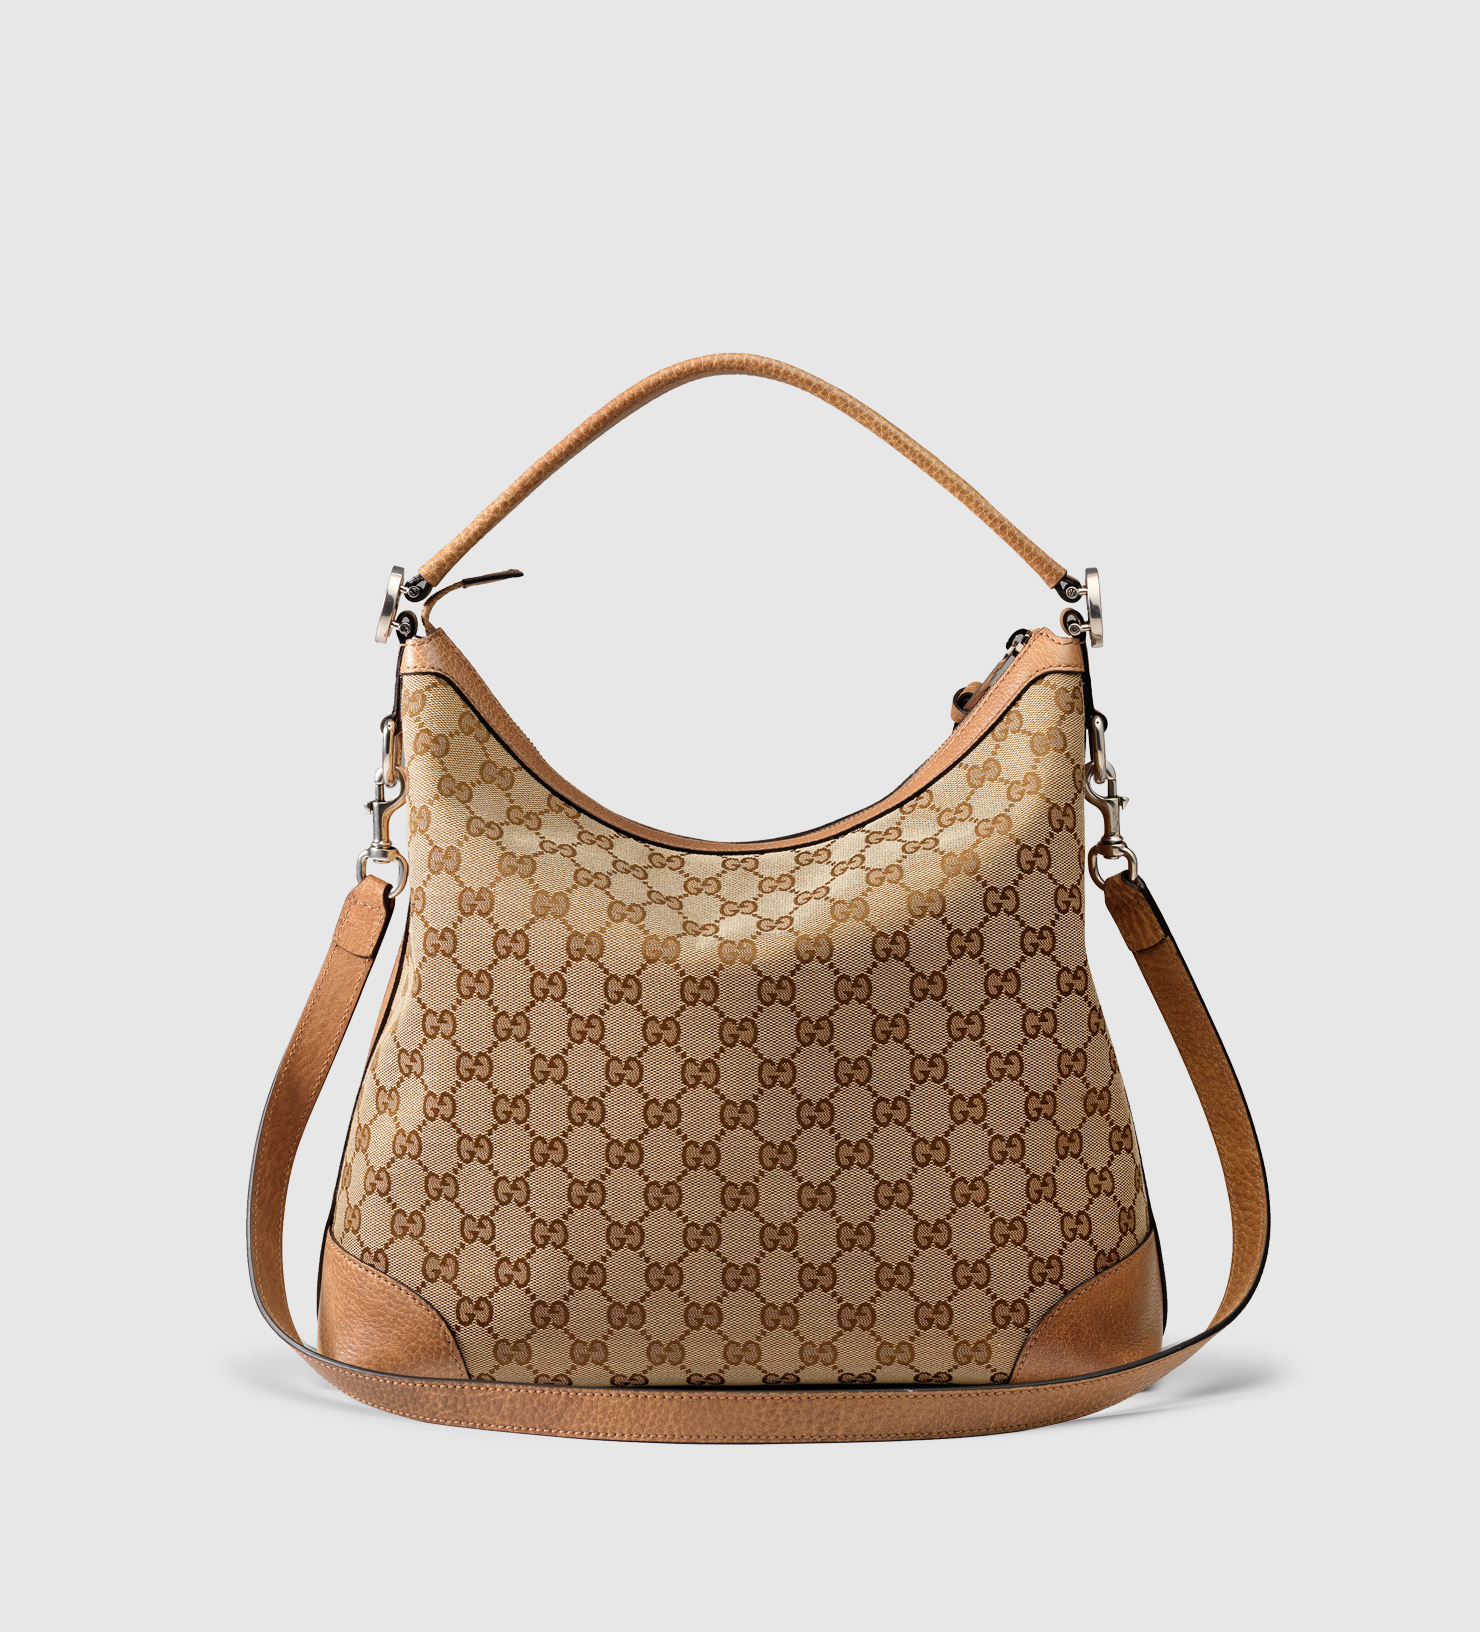 7849e5421ce Gucci Original Gg Canvas North South Tote Bag Tan - Best Canvas 2018